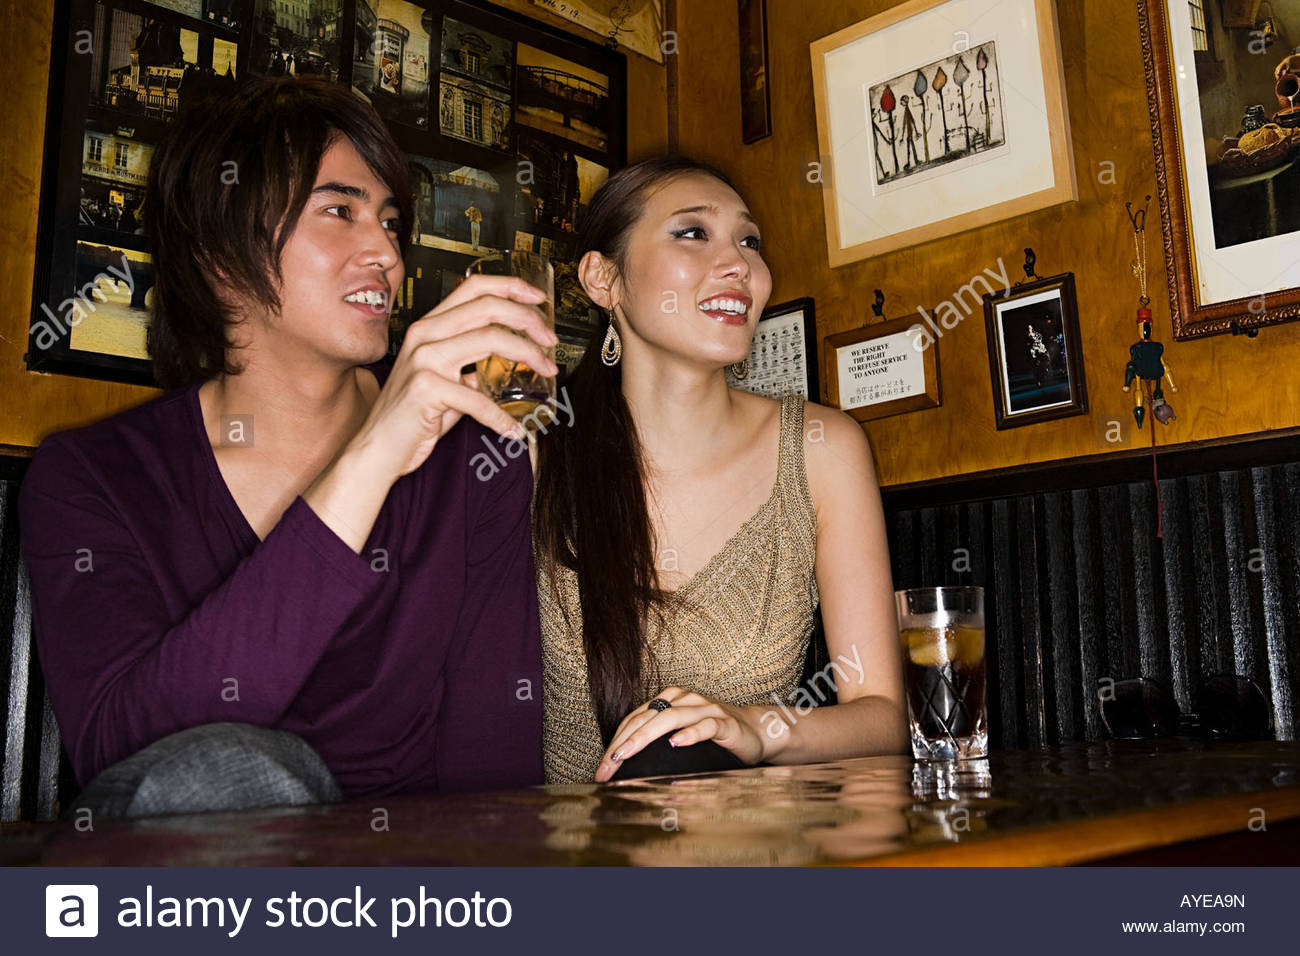 Japanese couple in a bar - Stock Image